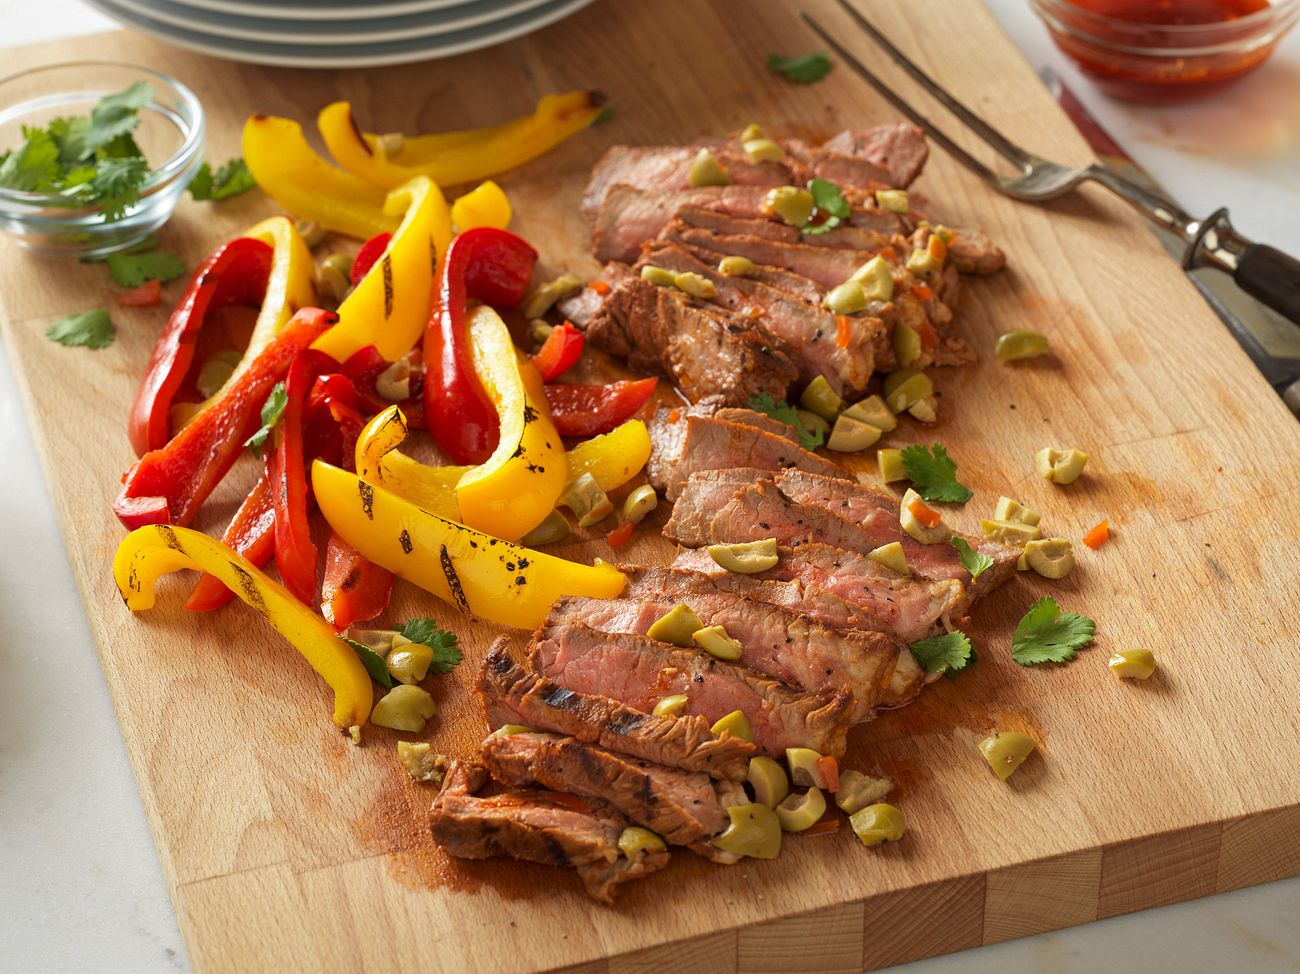 spanish-style-grilled-steak-with-olives-horizontal